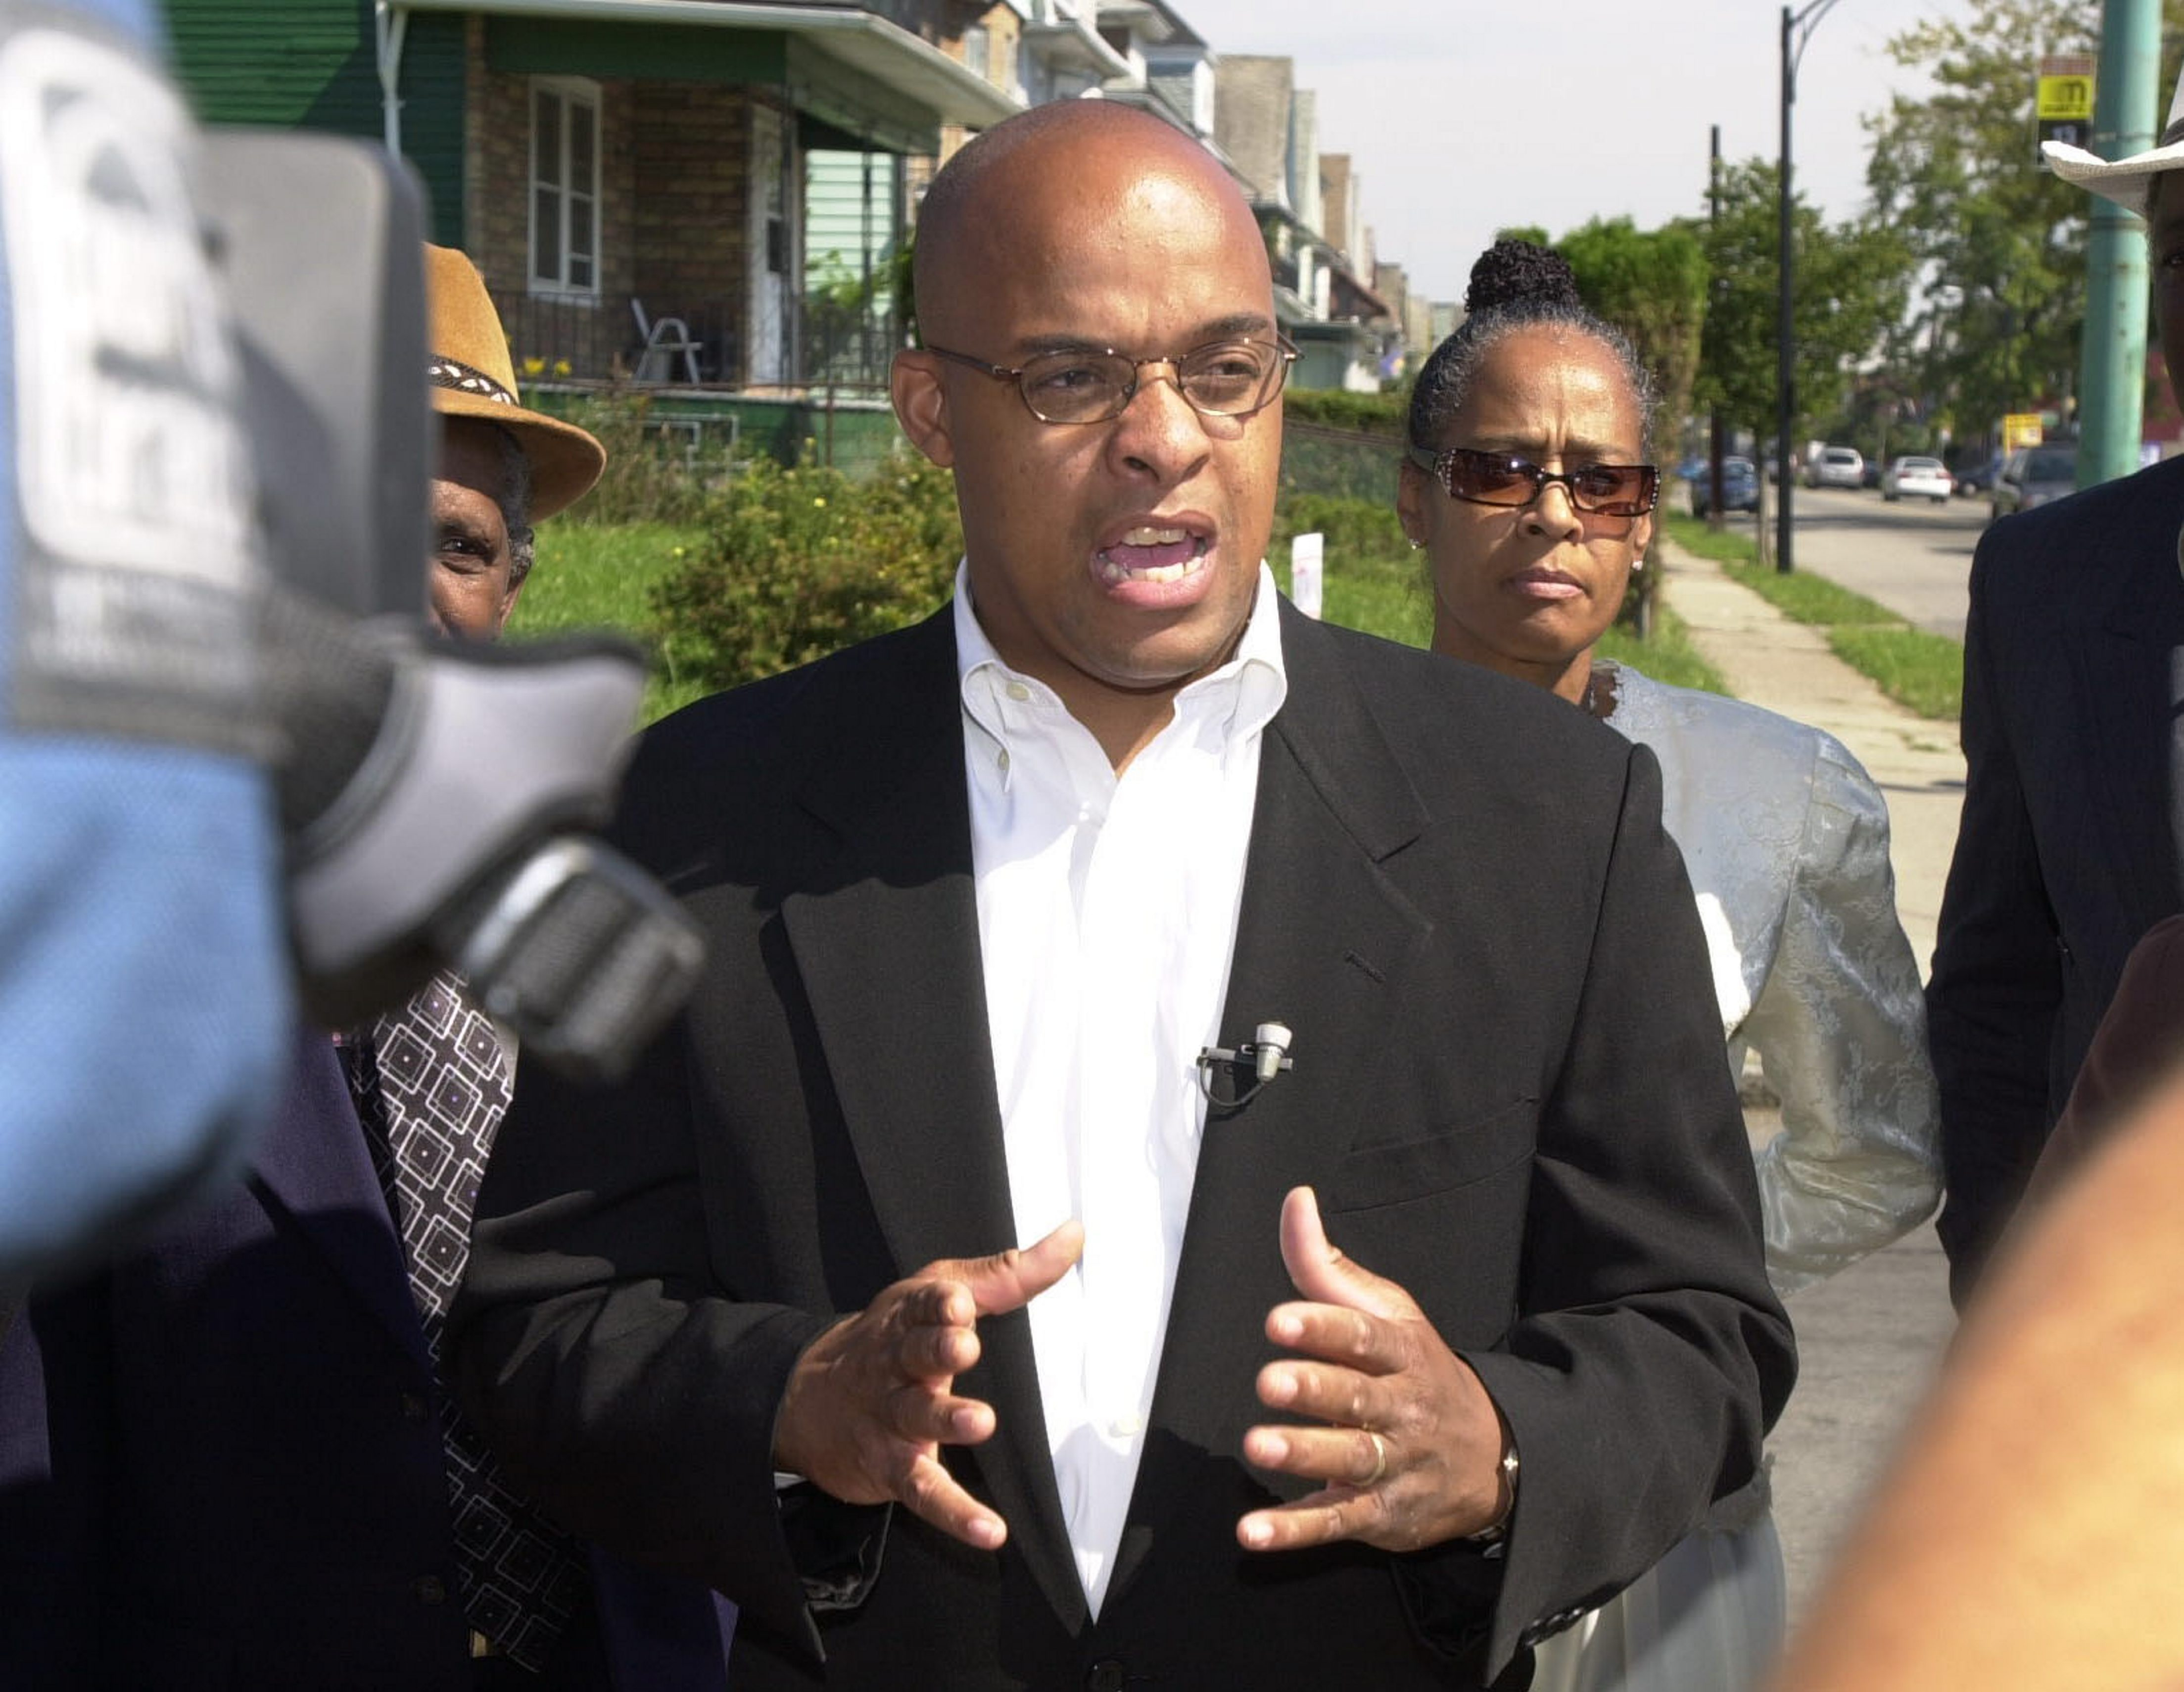 Sources say former state Sen. Antoine Thompson is planning to challenge Crystal Peoples-Stokes for her Assembly seat. (Buffalo News file photo)